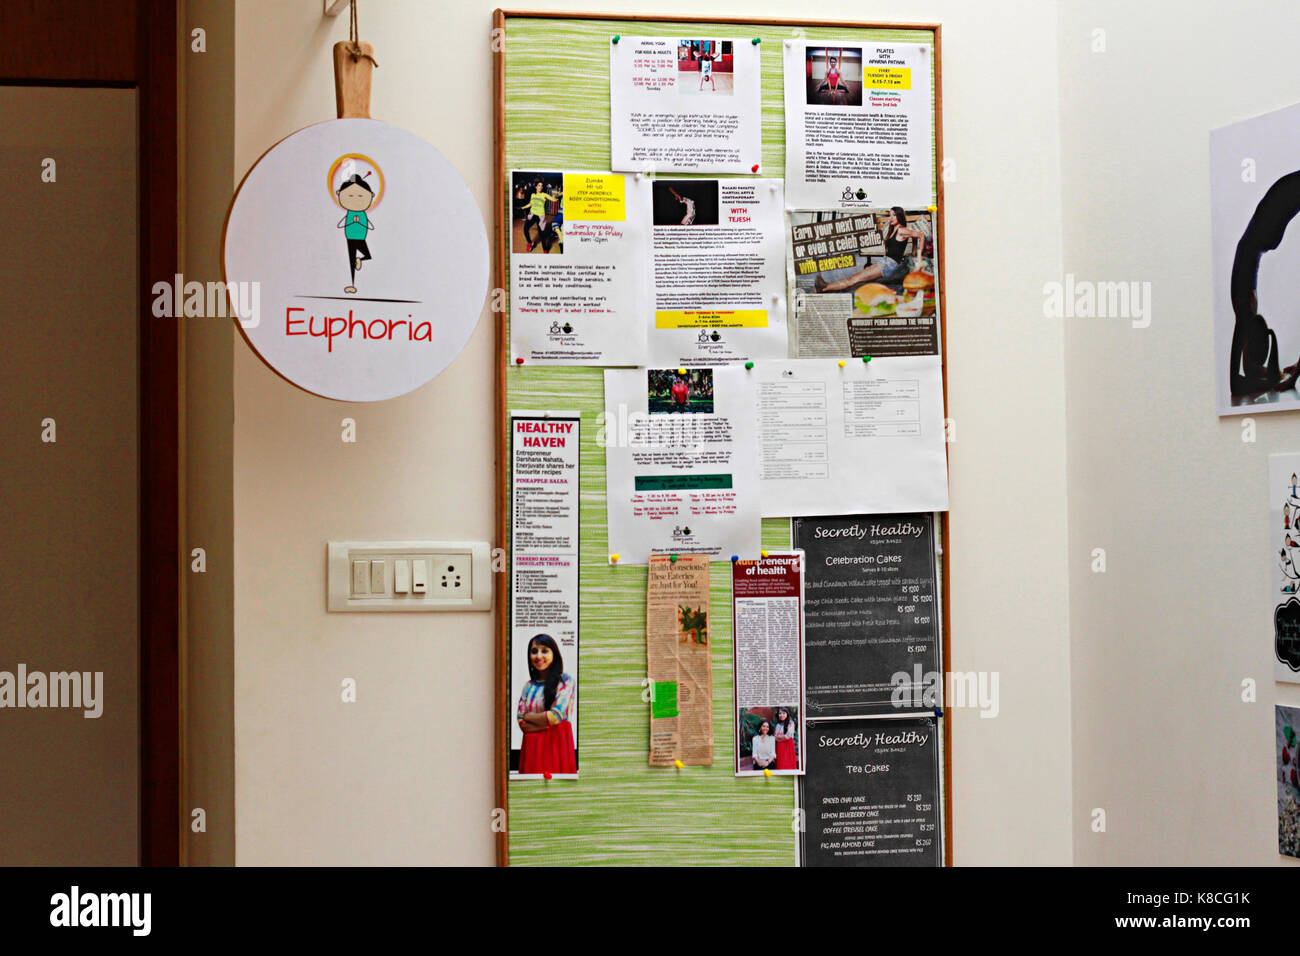 Message board with media coverage and events at a café  in Bangalore - Stock Image